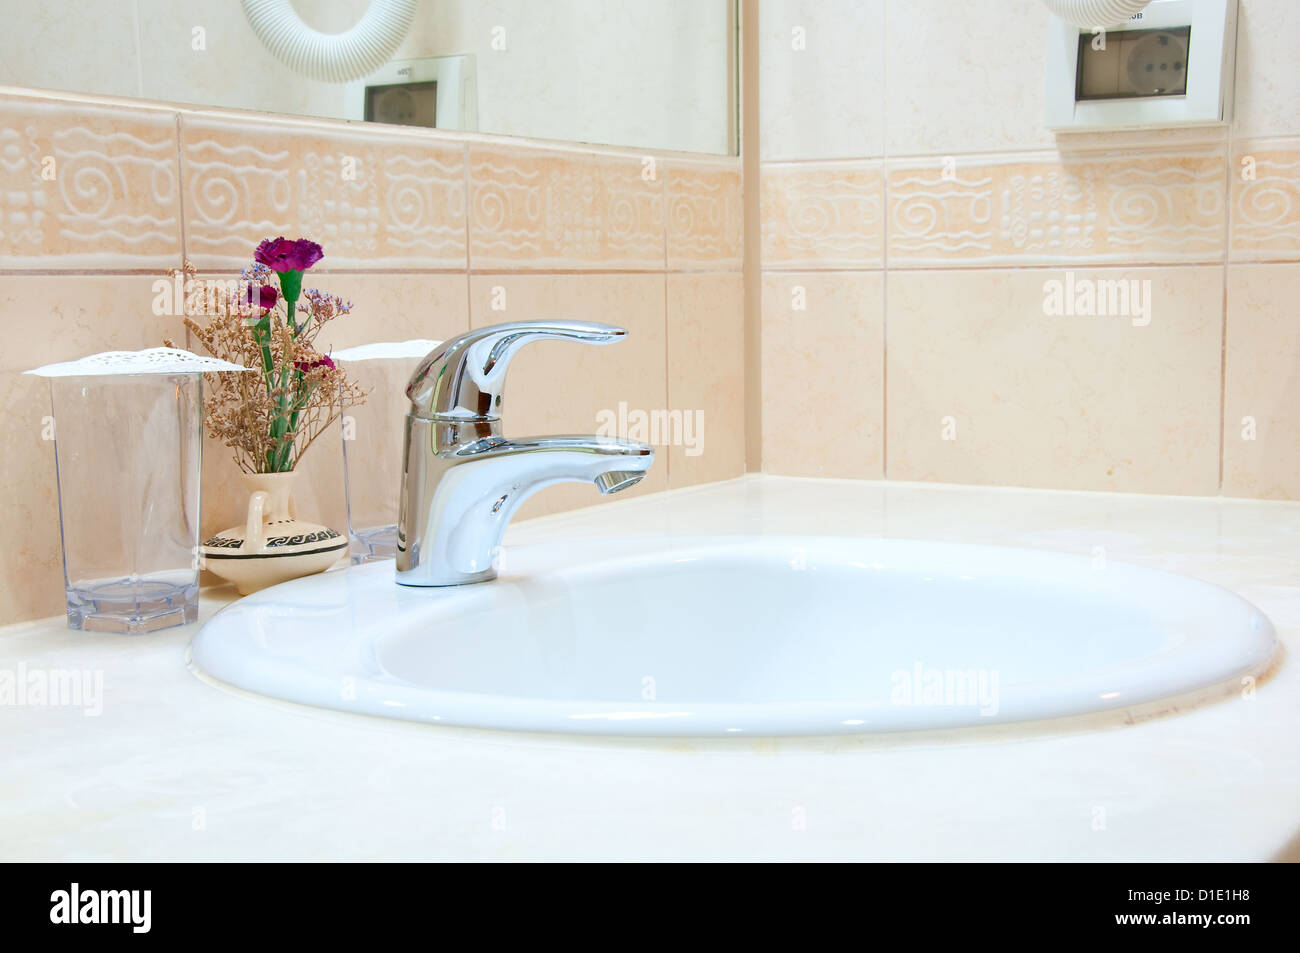 Hotel Bathroom: Sink, Tap And Glasses